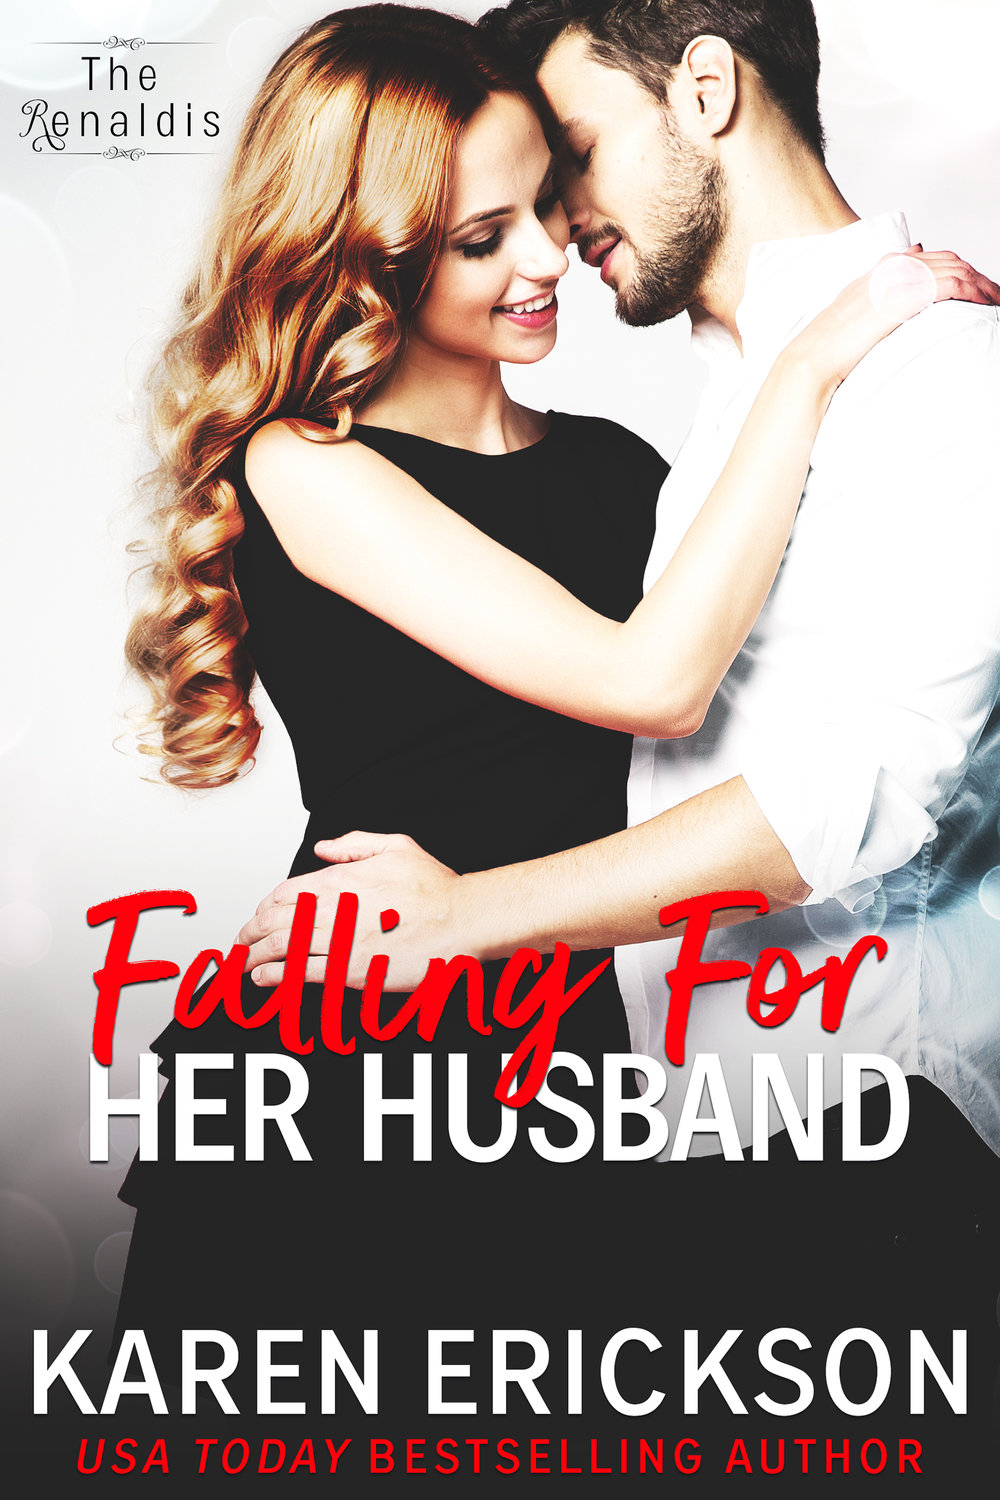 Falling For Her Husband - The Renaldis, Book 3Amazon •B&N •iBooks •Kobo • GooglePlayShe's desperate to remember…and he's desperate to forget.These are the things Amber Renaldi knows for sure:She's in the hospital.Her modeling career may be over.And her handsome husband will treat her like a queen, through her recovery and beyond. But there's a shadow lurking just beyond what she remembers before the crash.Vincenzo Renaldi knows other things.He was the one who chased her away, and into the path of the car.That even before the accident, the magic of their whirlwind romance was dissipating.And that if Amber ever remembers everything, he could lose her again—this time forever.Amazon •B&N •iBooks •Kobo • GooglePlay